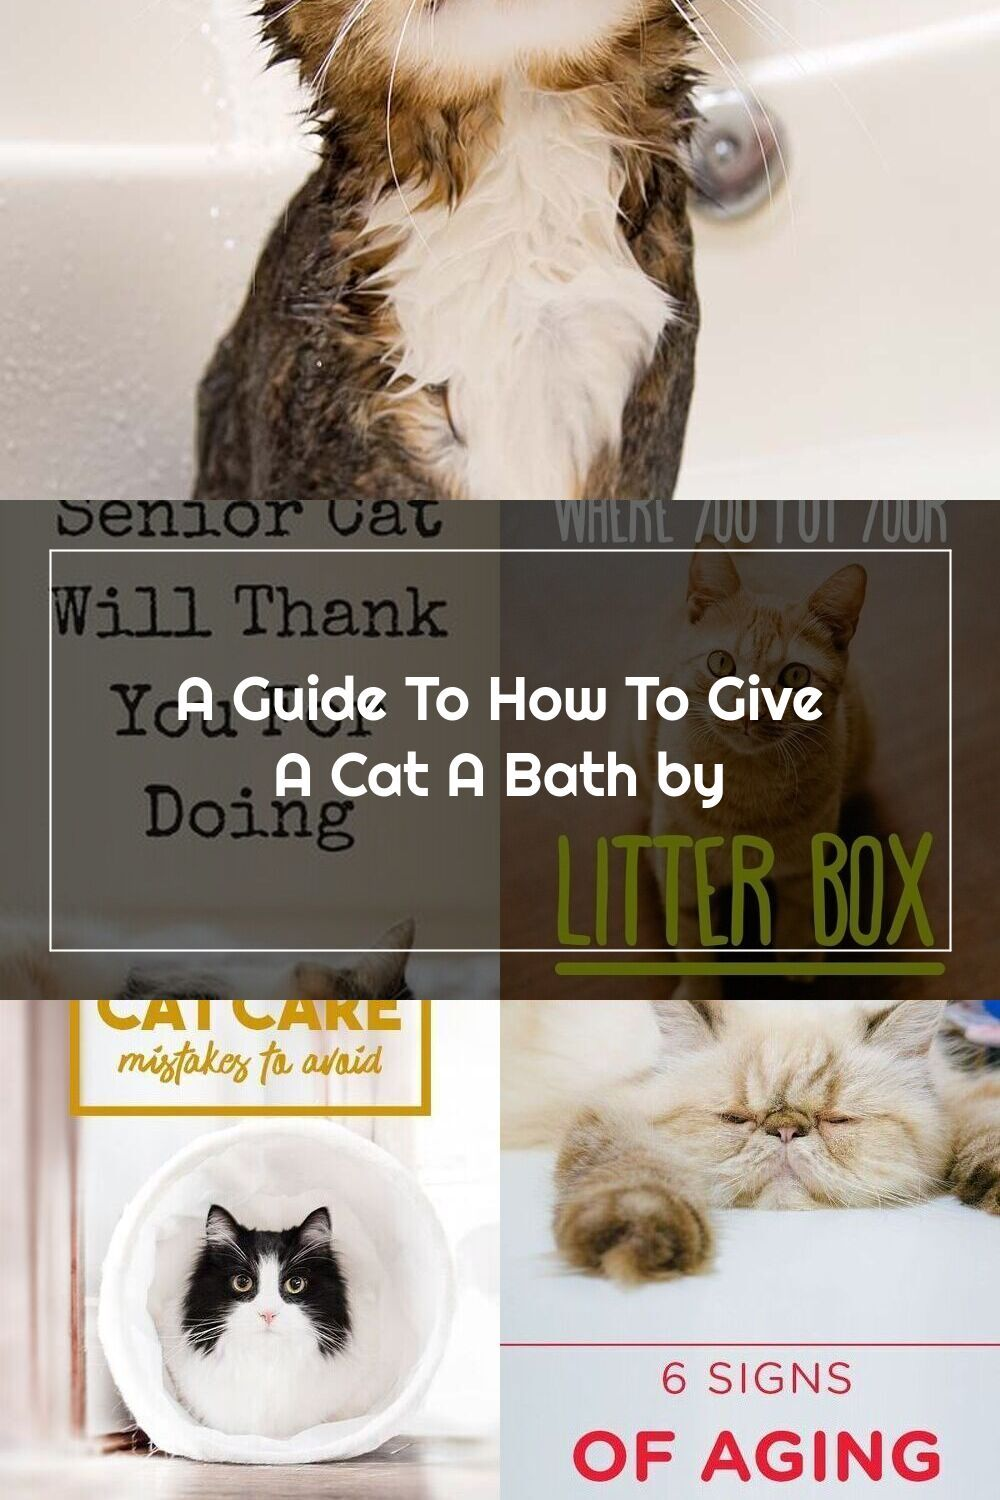 How To Bathe A Cat Tips And Advice Please Remember Please Please Make Sure Your Cat Has No Knots Or Mats Before You Get Them In 2020 Cat Care Tips